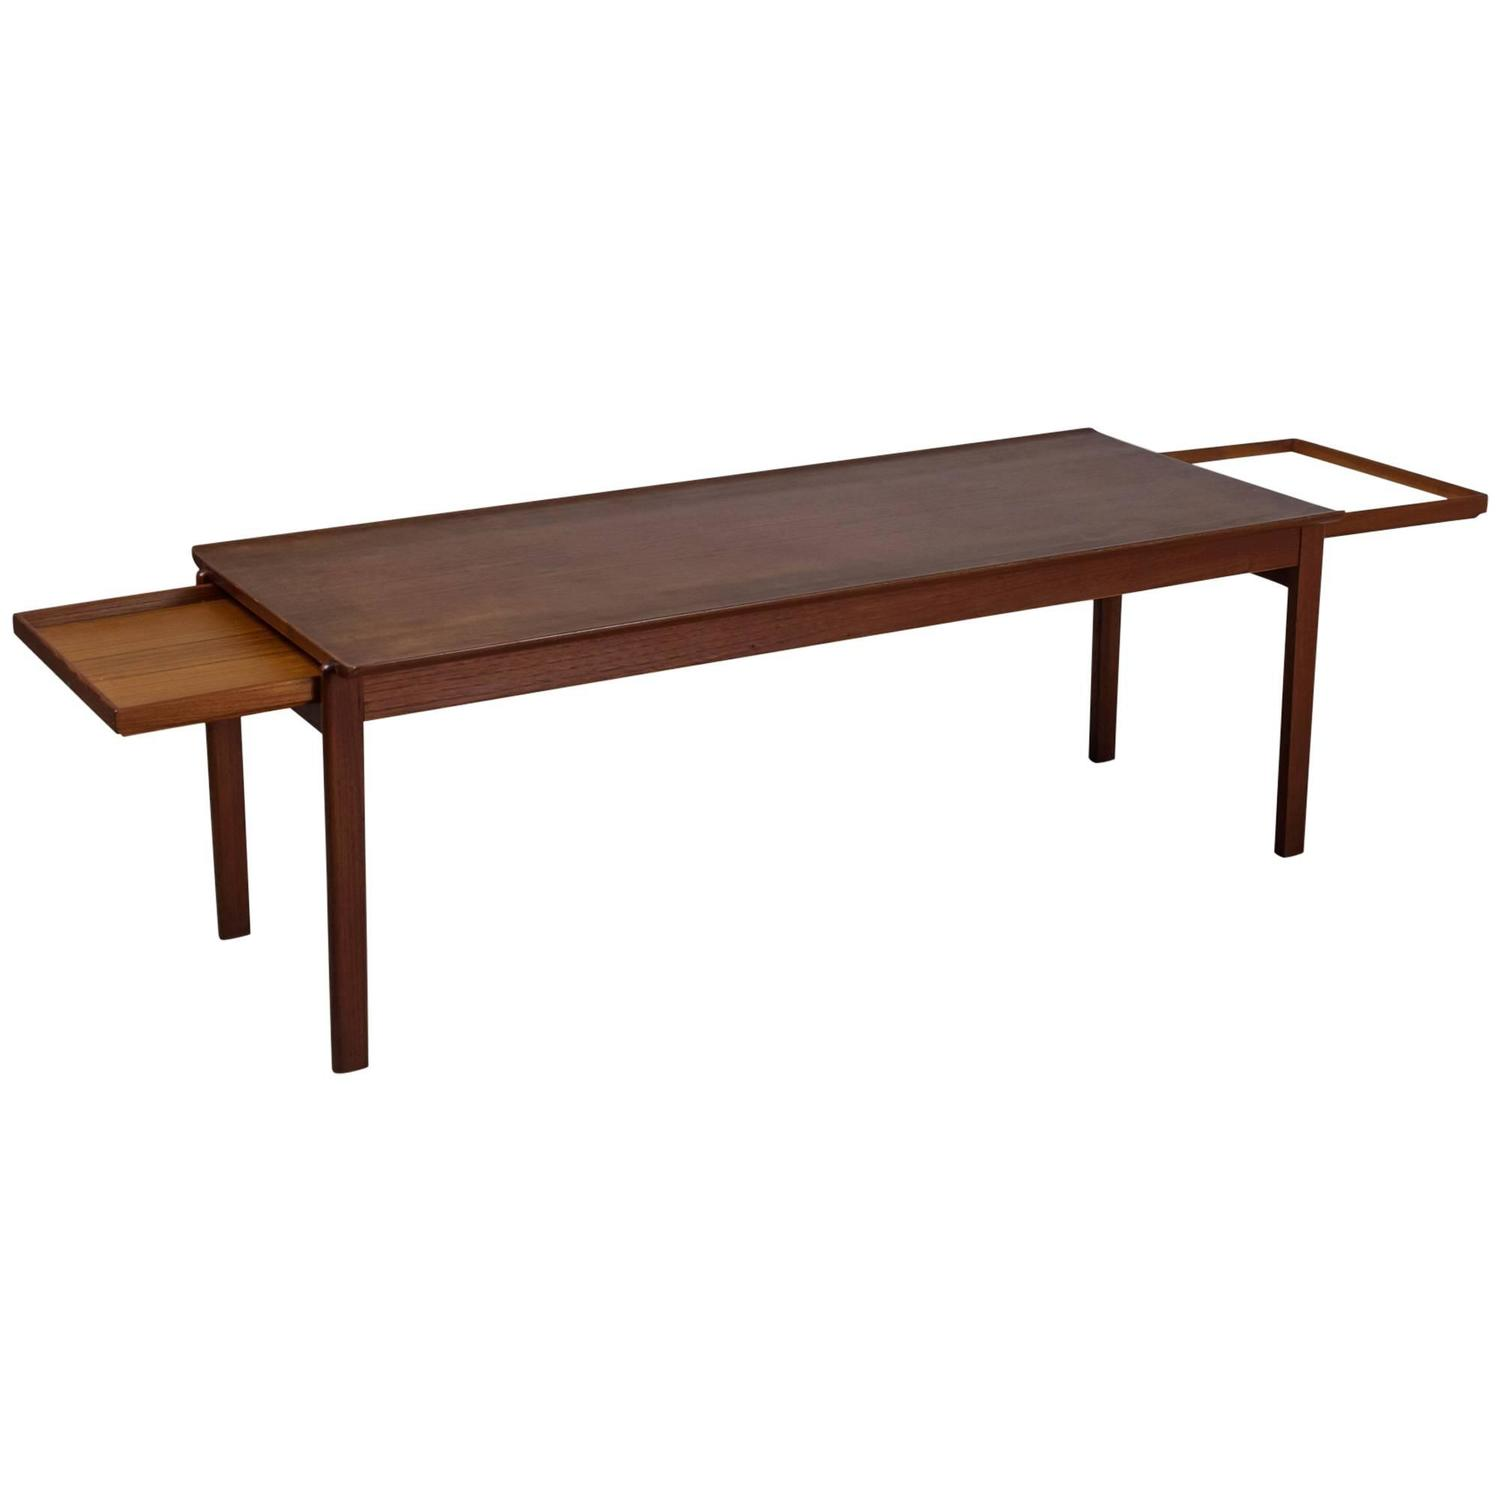 Johannes Andersen Coffee Table With Pull Out Shelves Denmark 1960s For Sale At 1stdibs